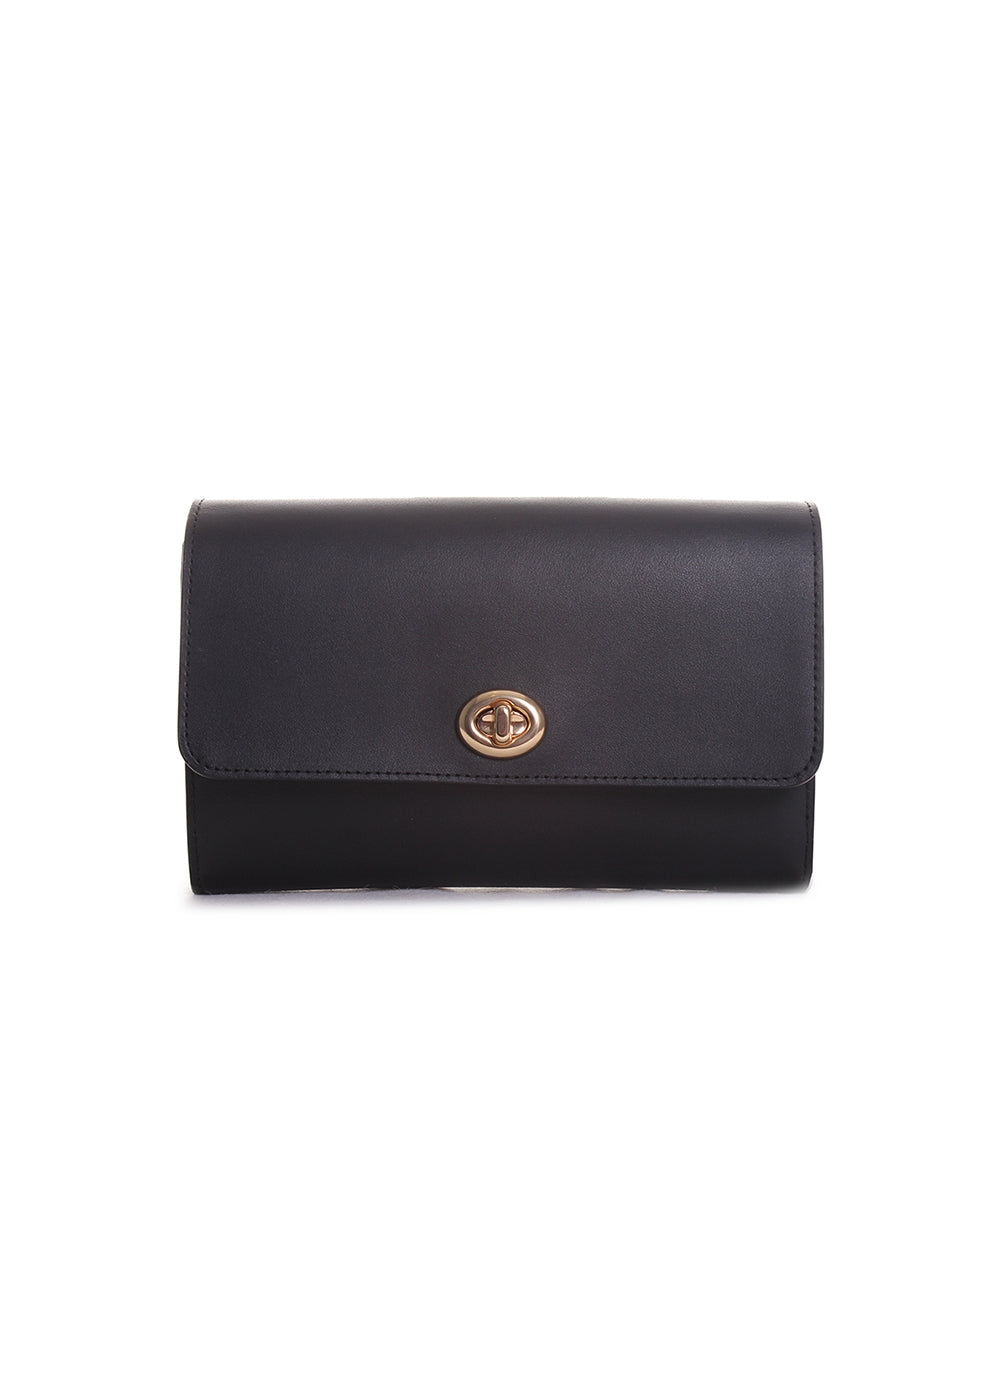 Marlow Crossbody Bag in Black